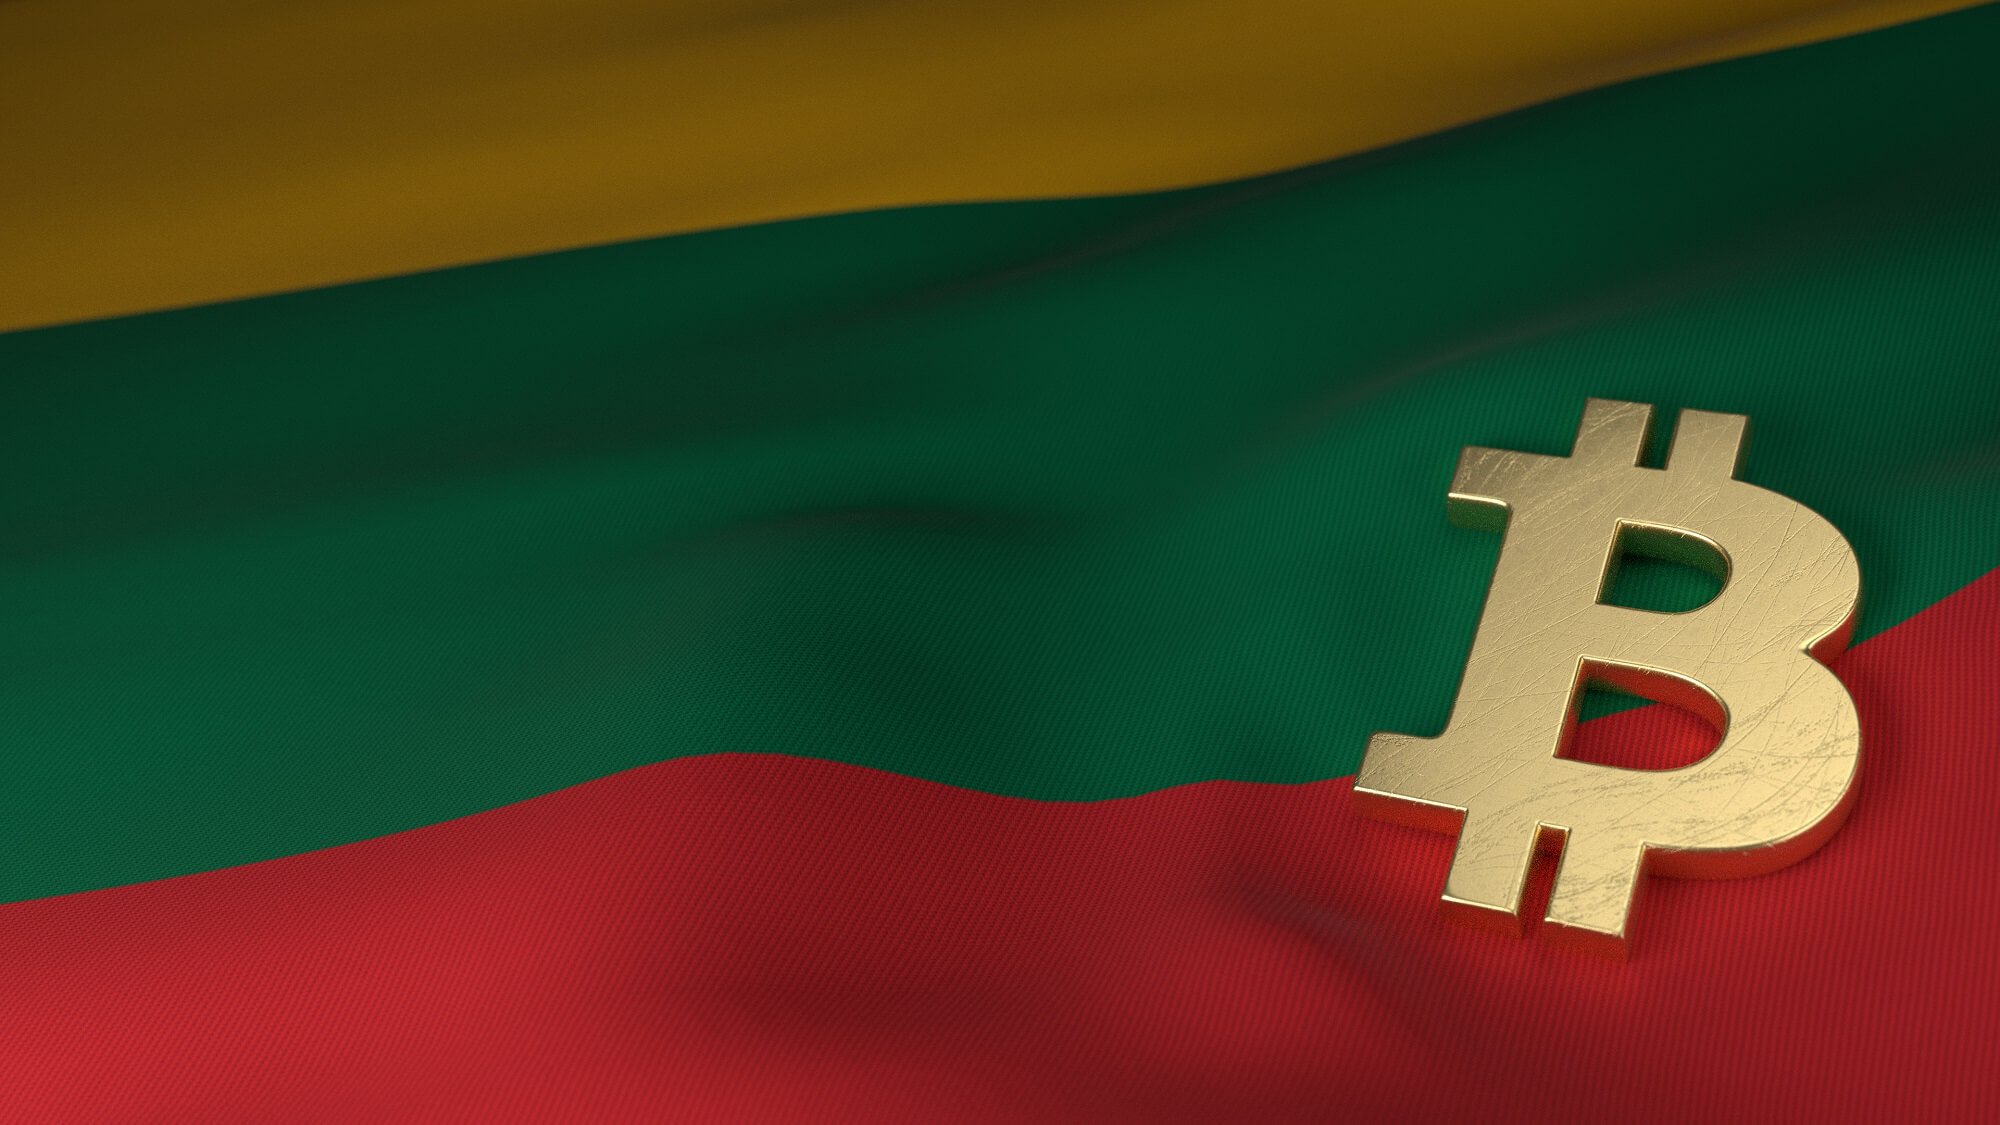 The Minister of Lithuania Says Blockchain Technology Could be a Massive Potential